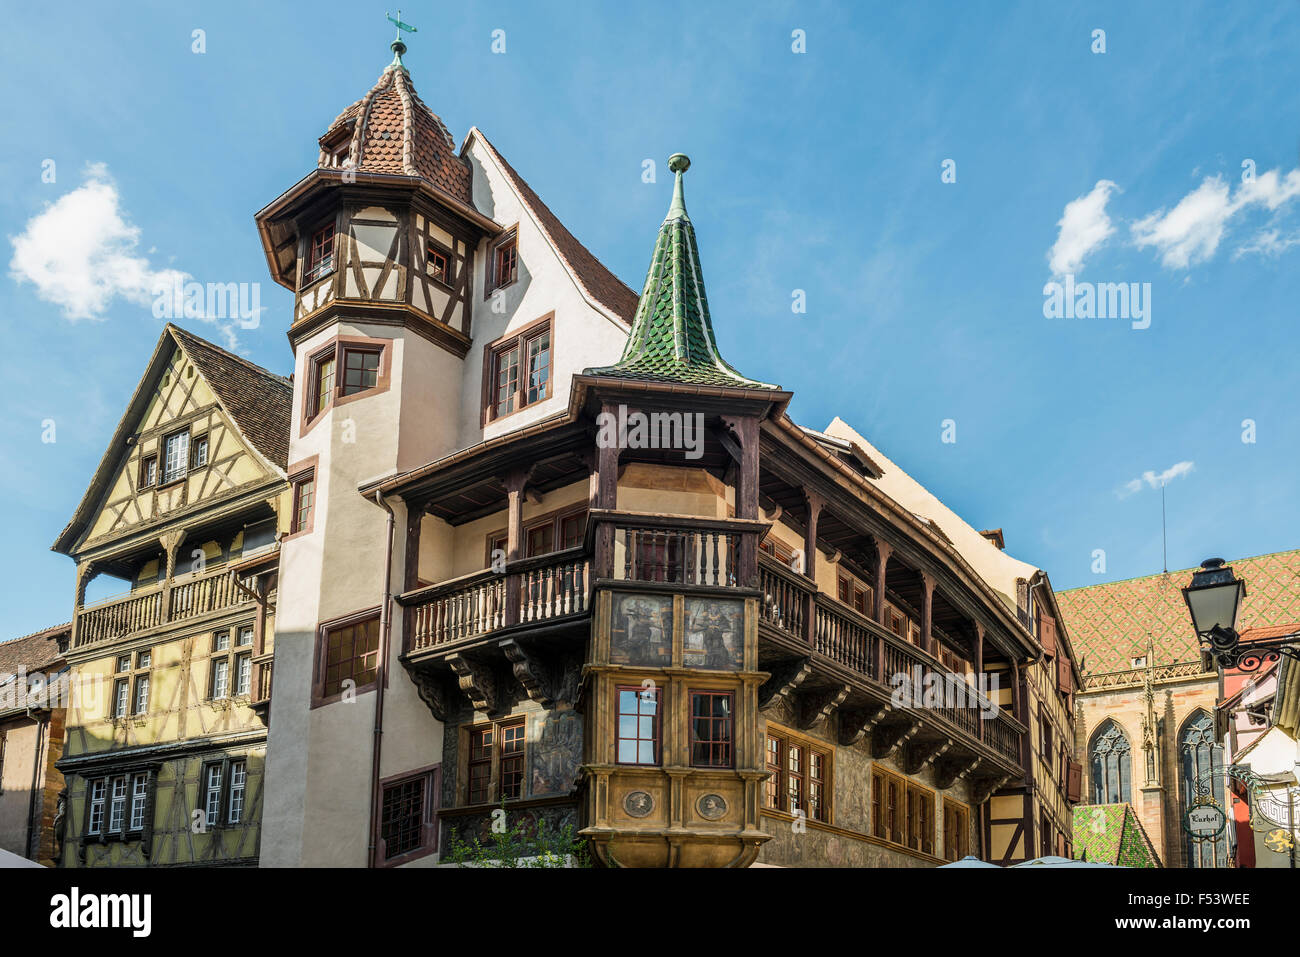 maison pfister colmar alsace france stock photo 89210982 alamy. Black Bedroom Furniture Sets. Home Design Ideas